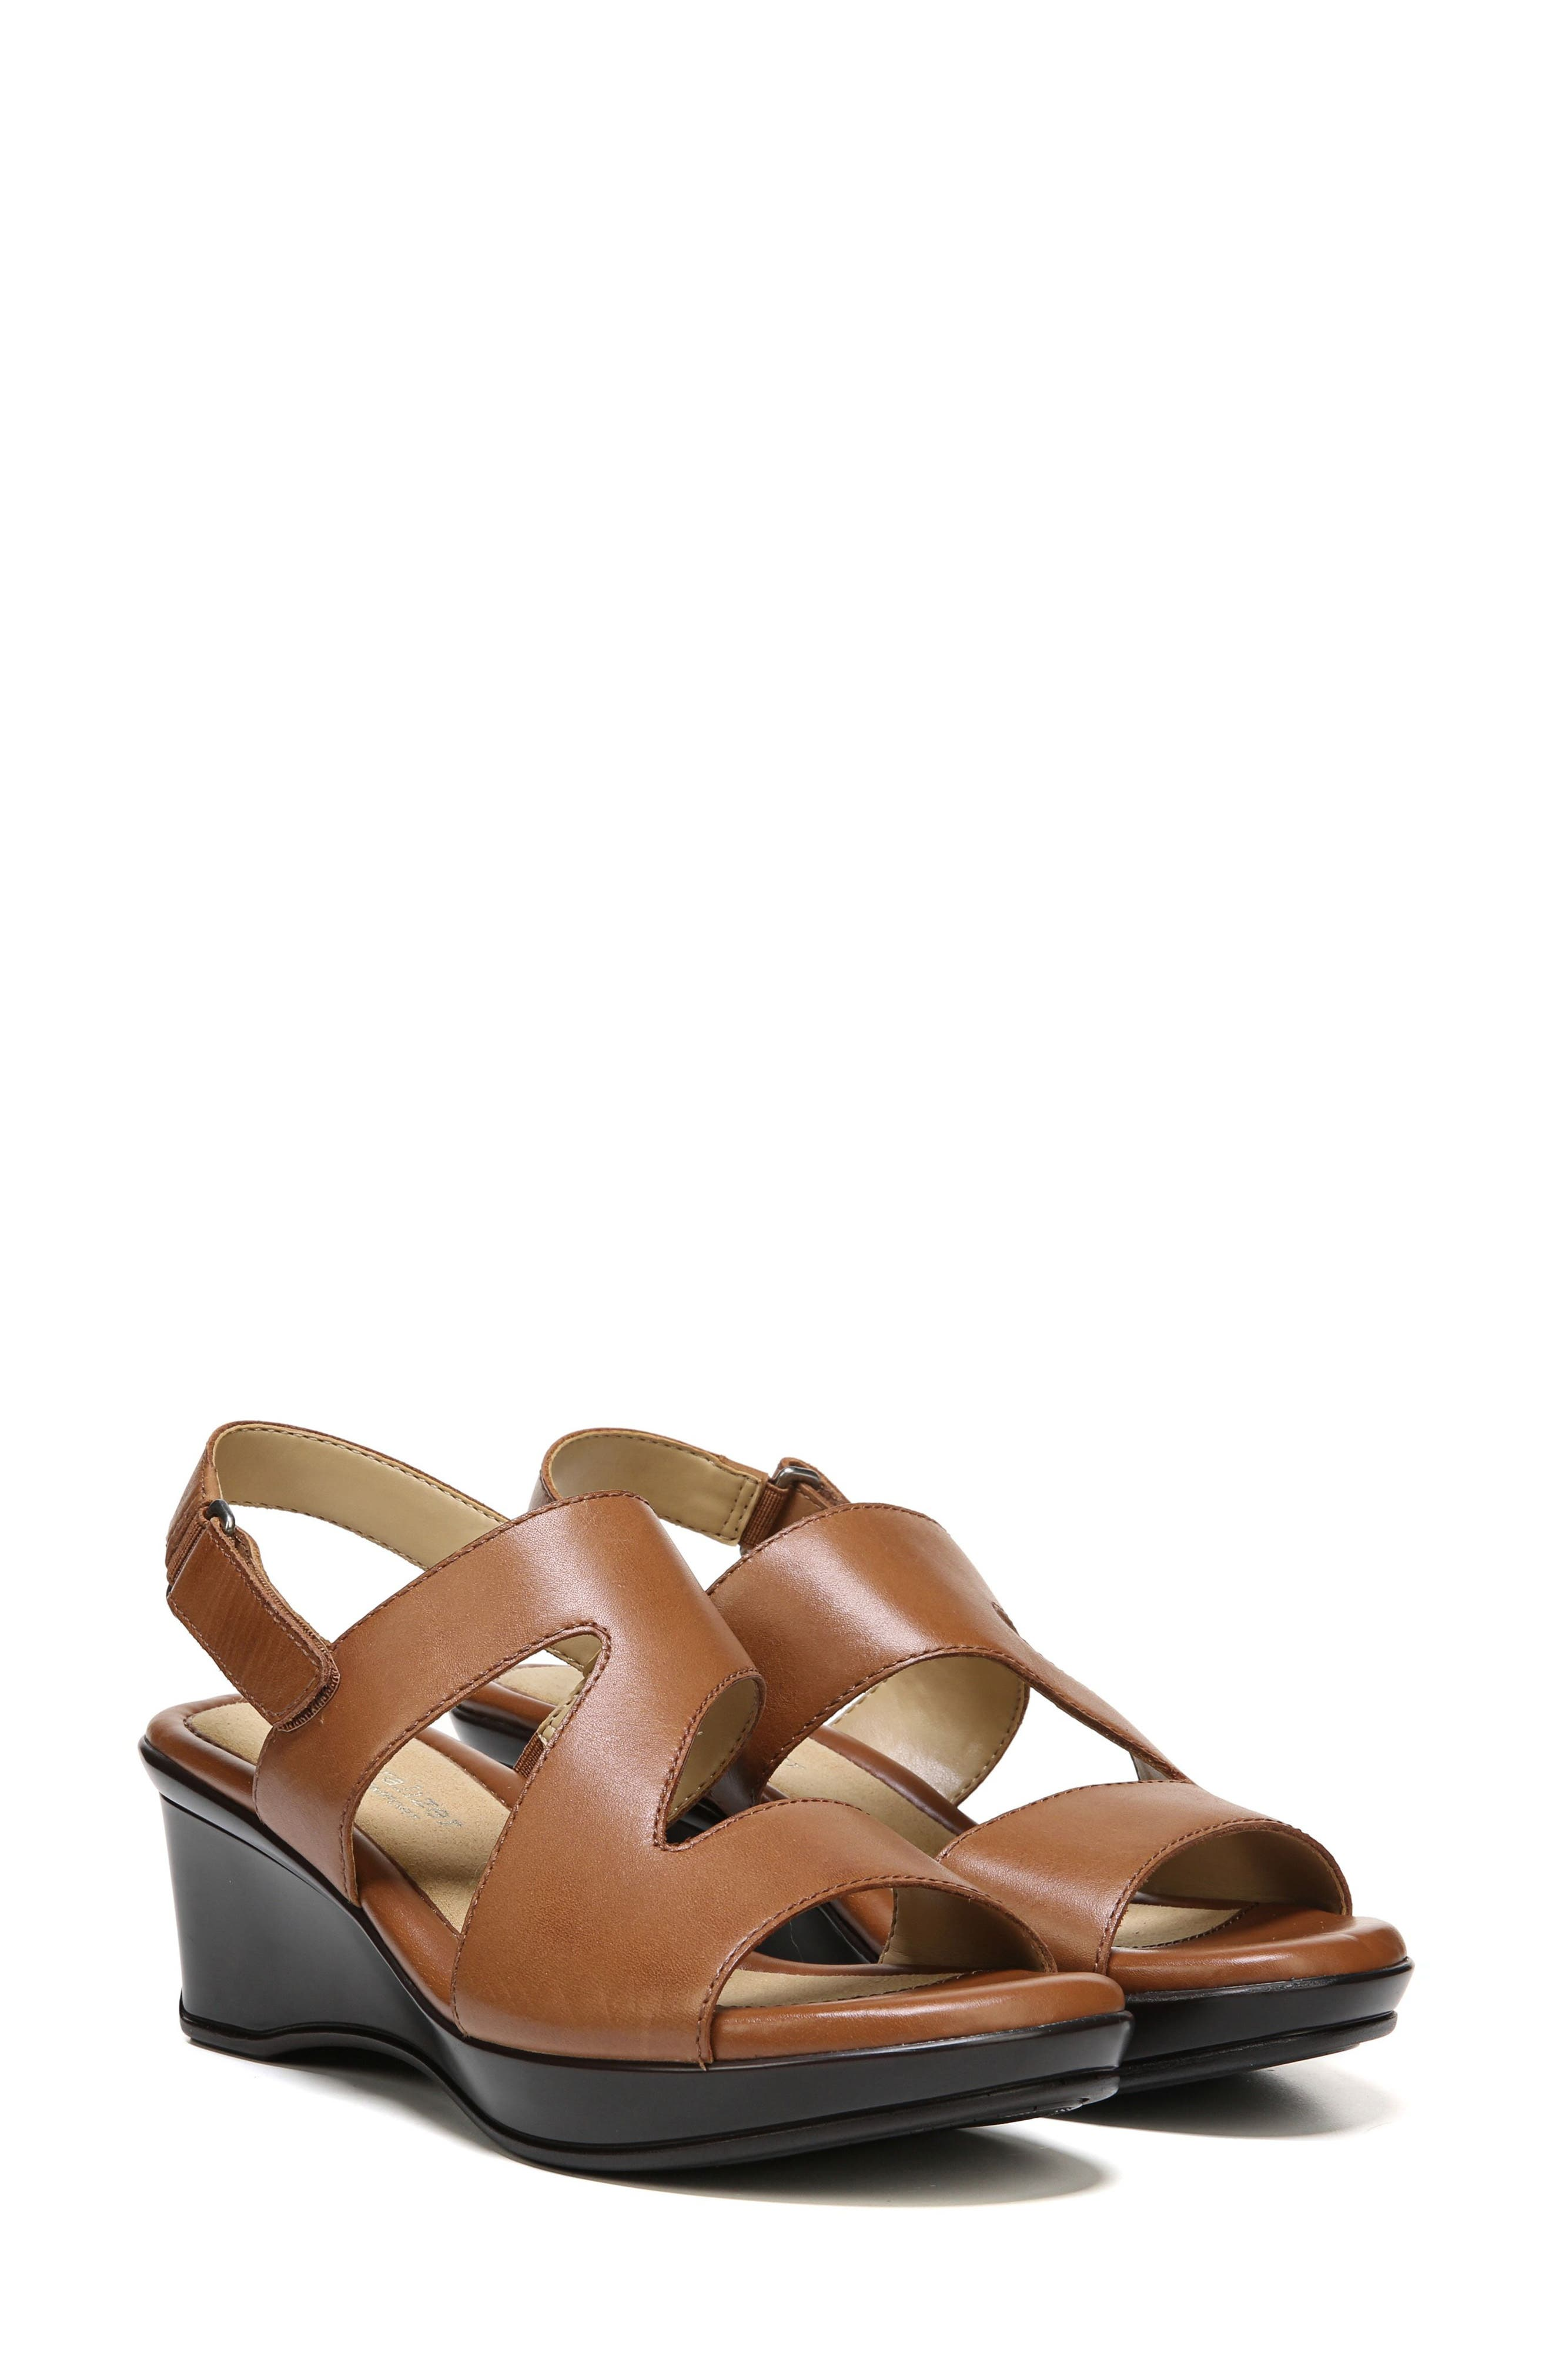 Valerie Wedge Sandal,                         Main,                         color, SADDLE LEATHER